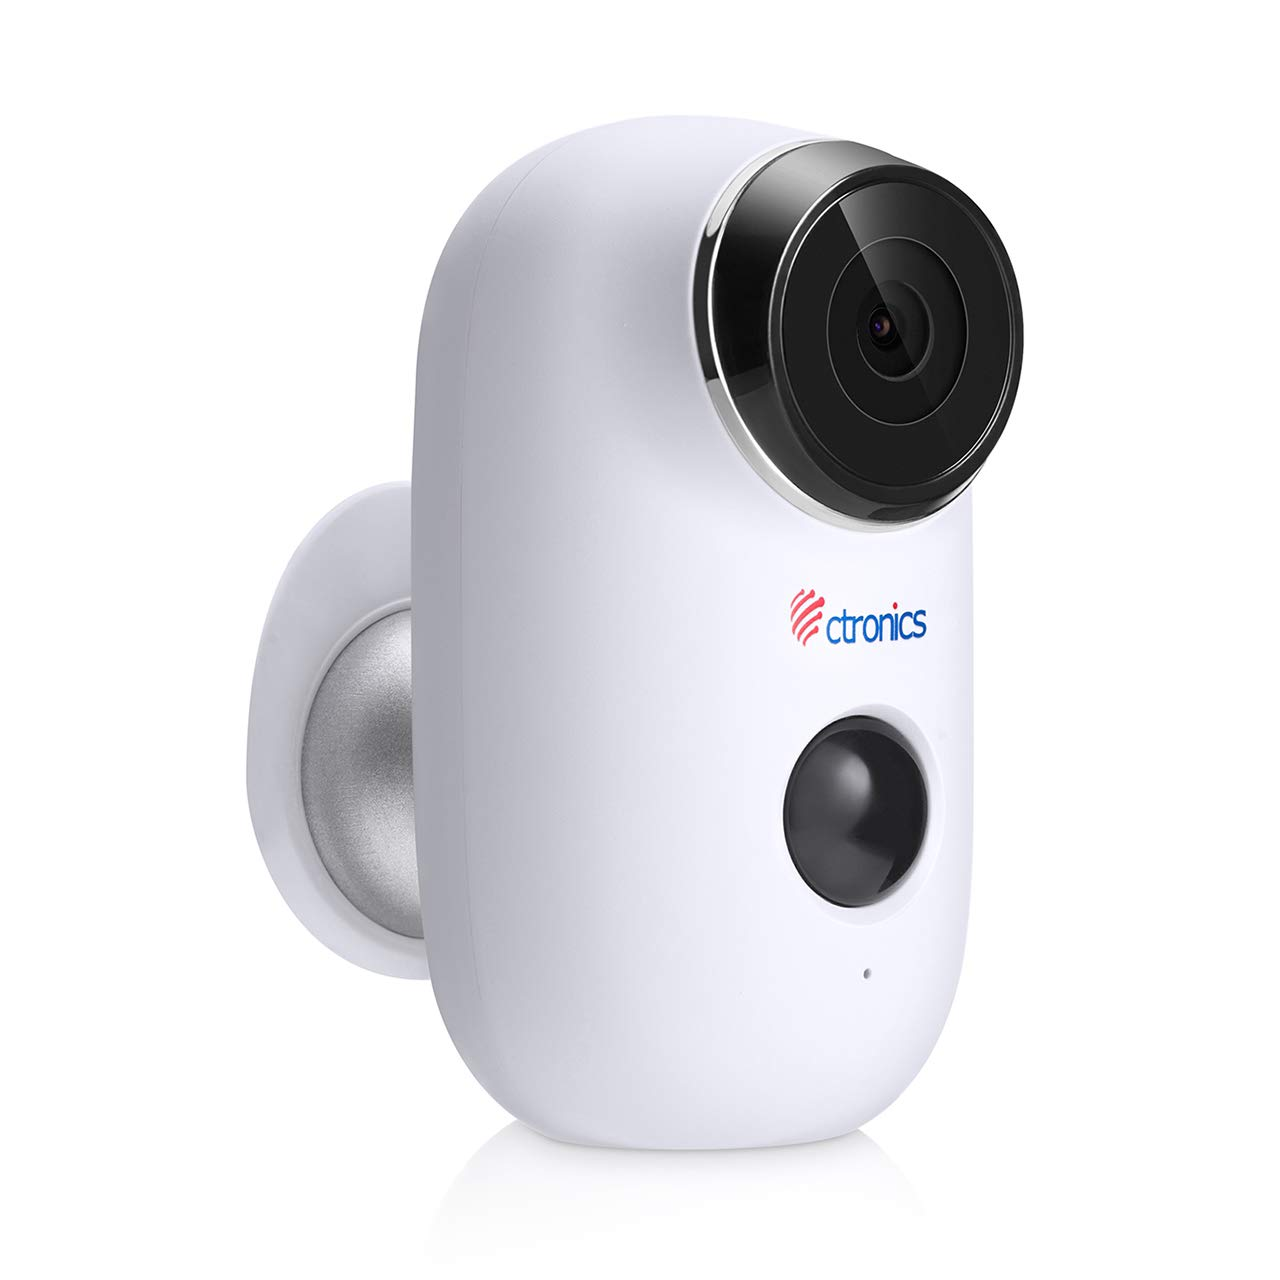 Ctronics Outdoor Security Camera, Wireless Rechargeable Battery Powered Surveillance System by Ctronics